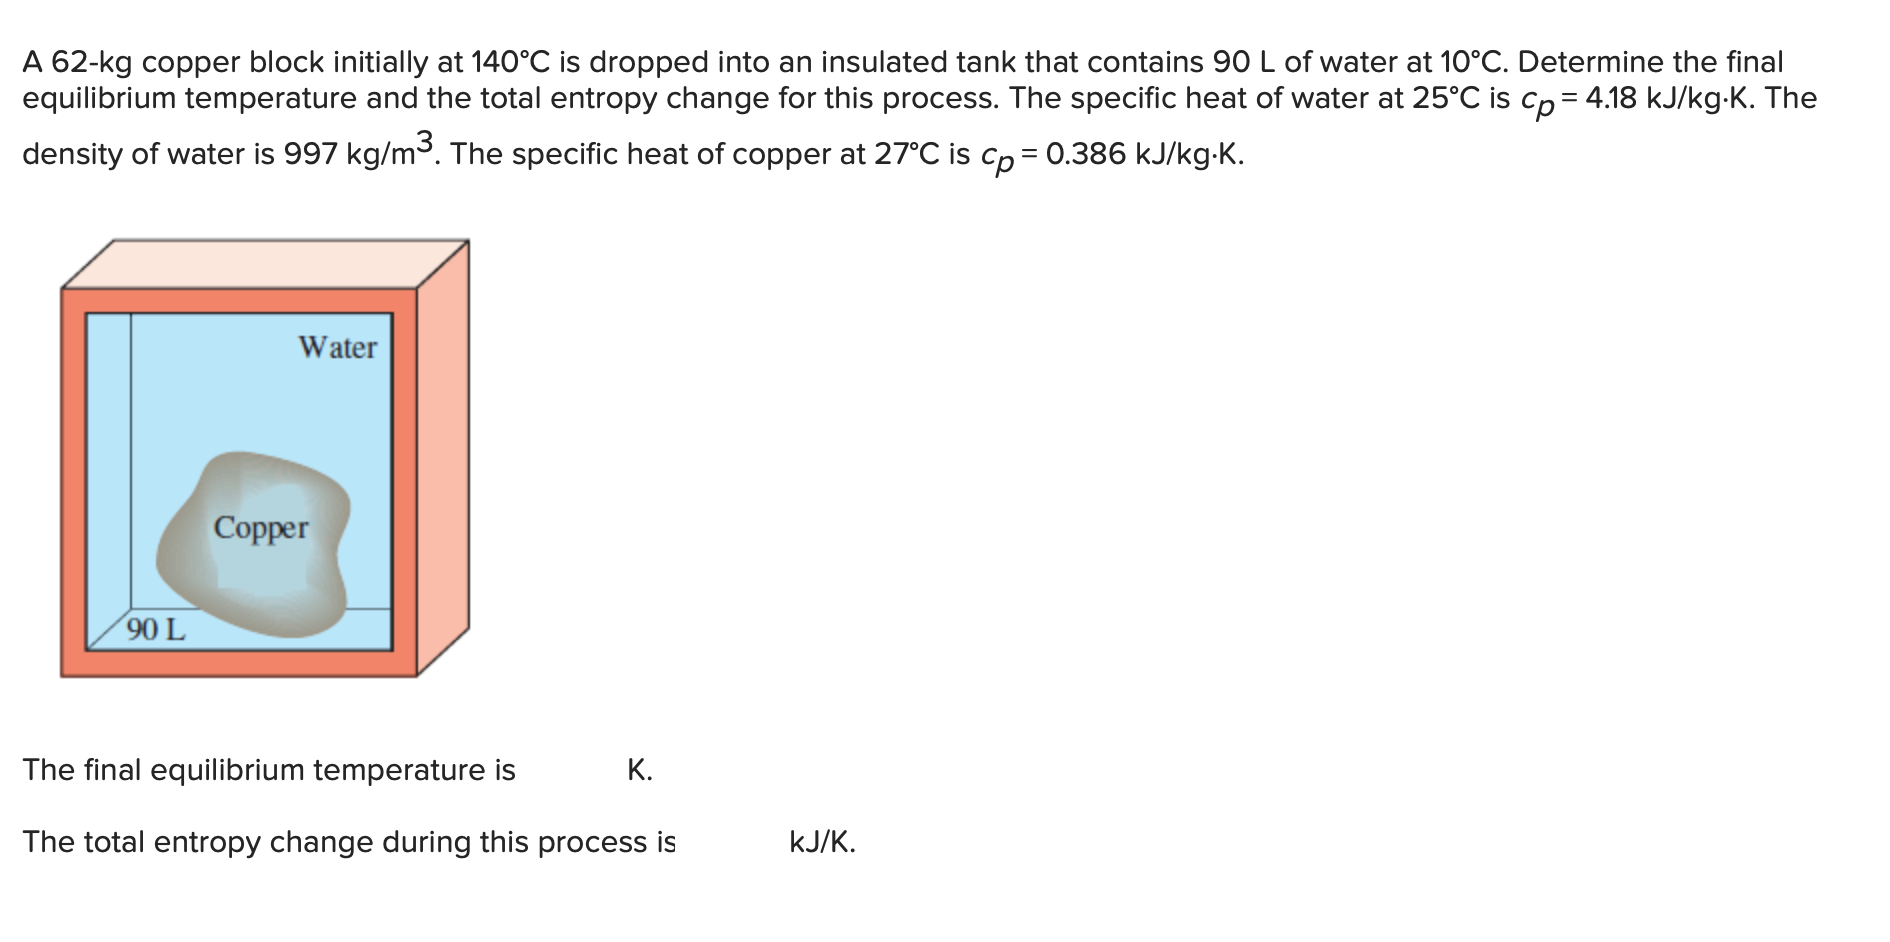 A 62-kg copper block initially at 140°C is dropped into an insulated tank that contains 90 L of water at 10°C. Determine the final equilibrium temperature and the total entropy change for this process. The specific heat of water at 25°C is cp 4.18 kJ/kg-K. The density of water is 997 kg/m. The specific heat of copper at 27°C is cp 0.386 kJ/kg-K. Water Сopper 90 L The final equilibrium temperature is К. kJ/K The total entropy change during this process is